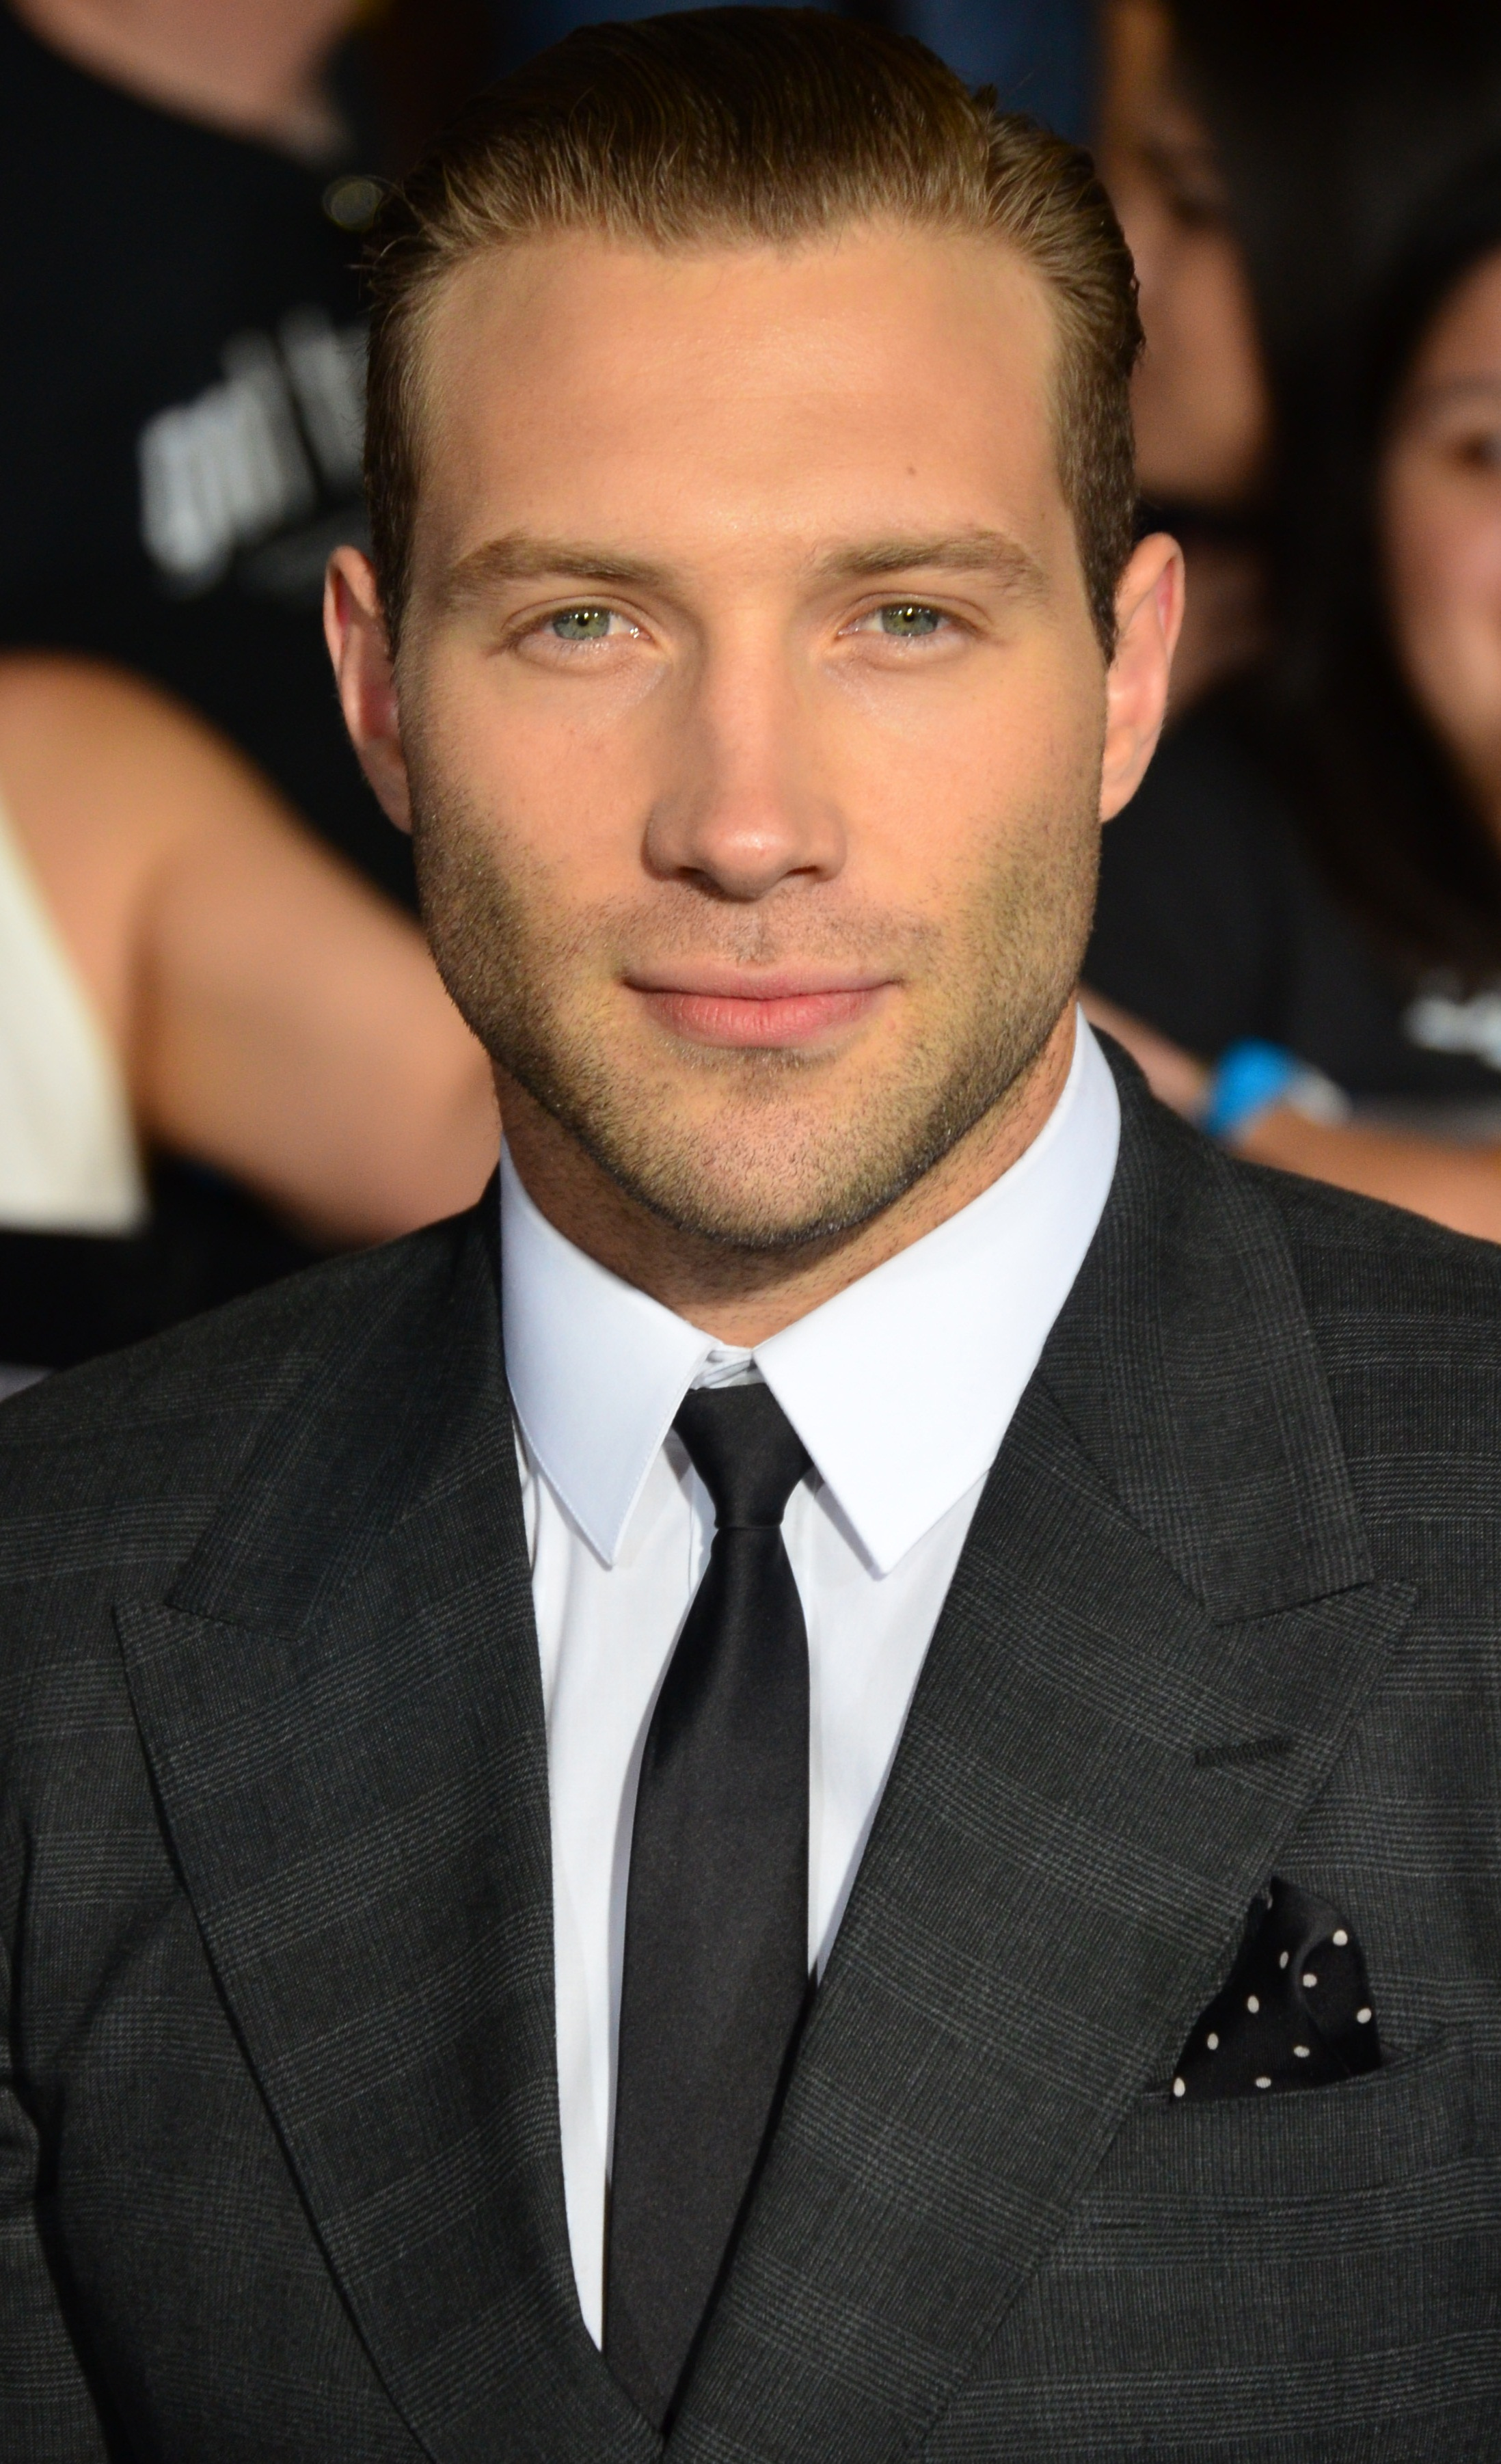 The 31-year old son of father Chris Courtney and mother Karen Courtney, 185 cm tall Jai Courtney in 2017 photo